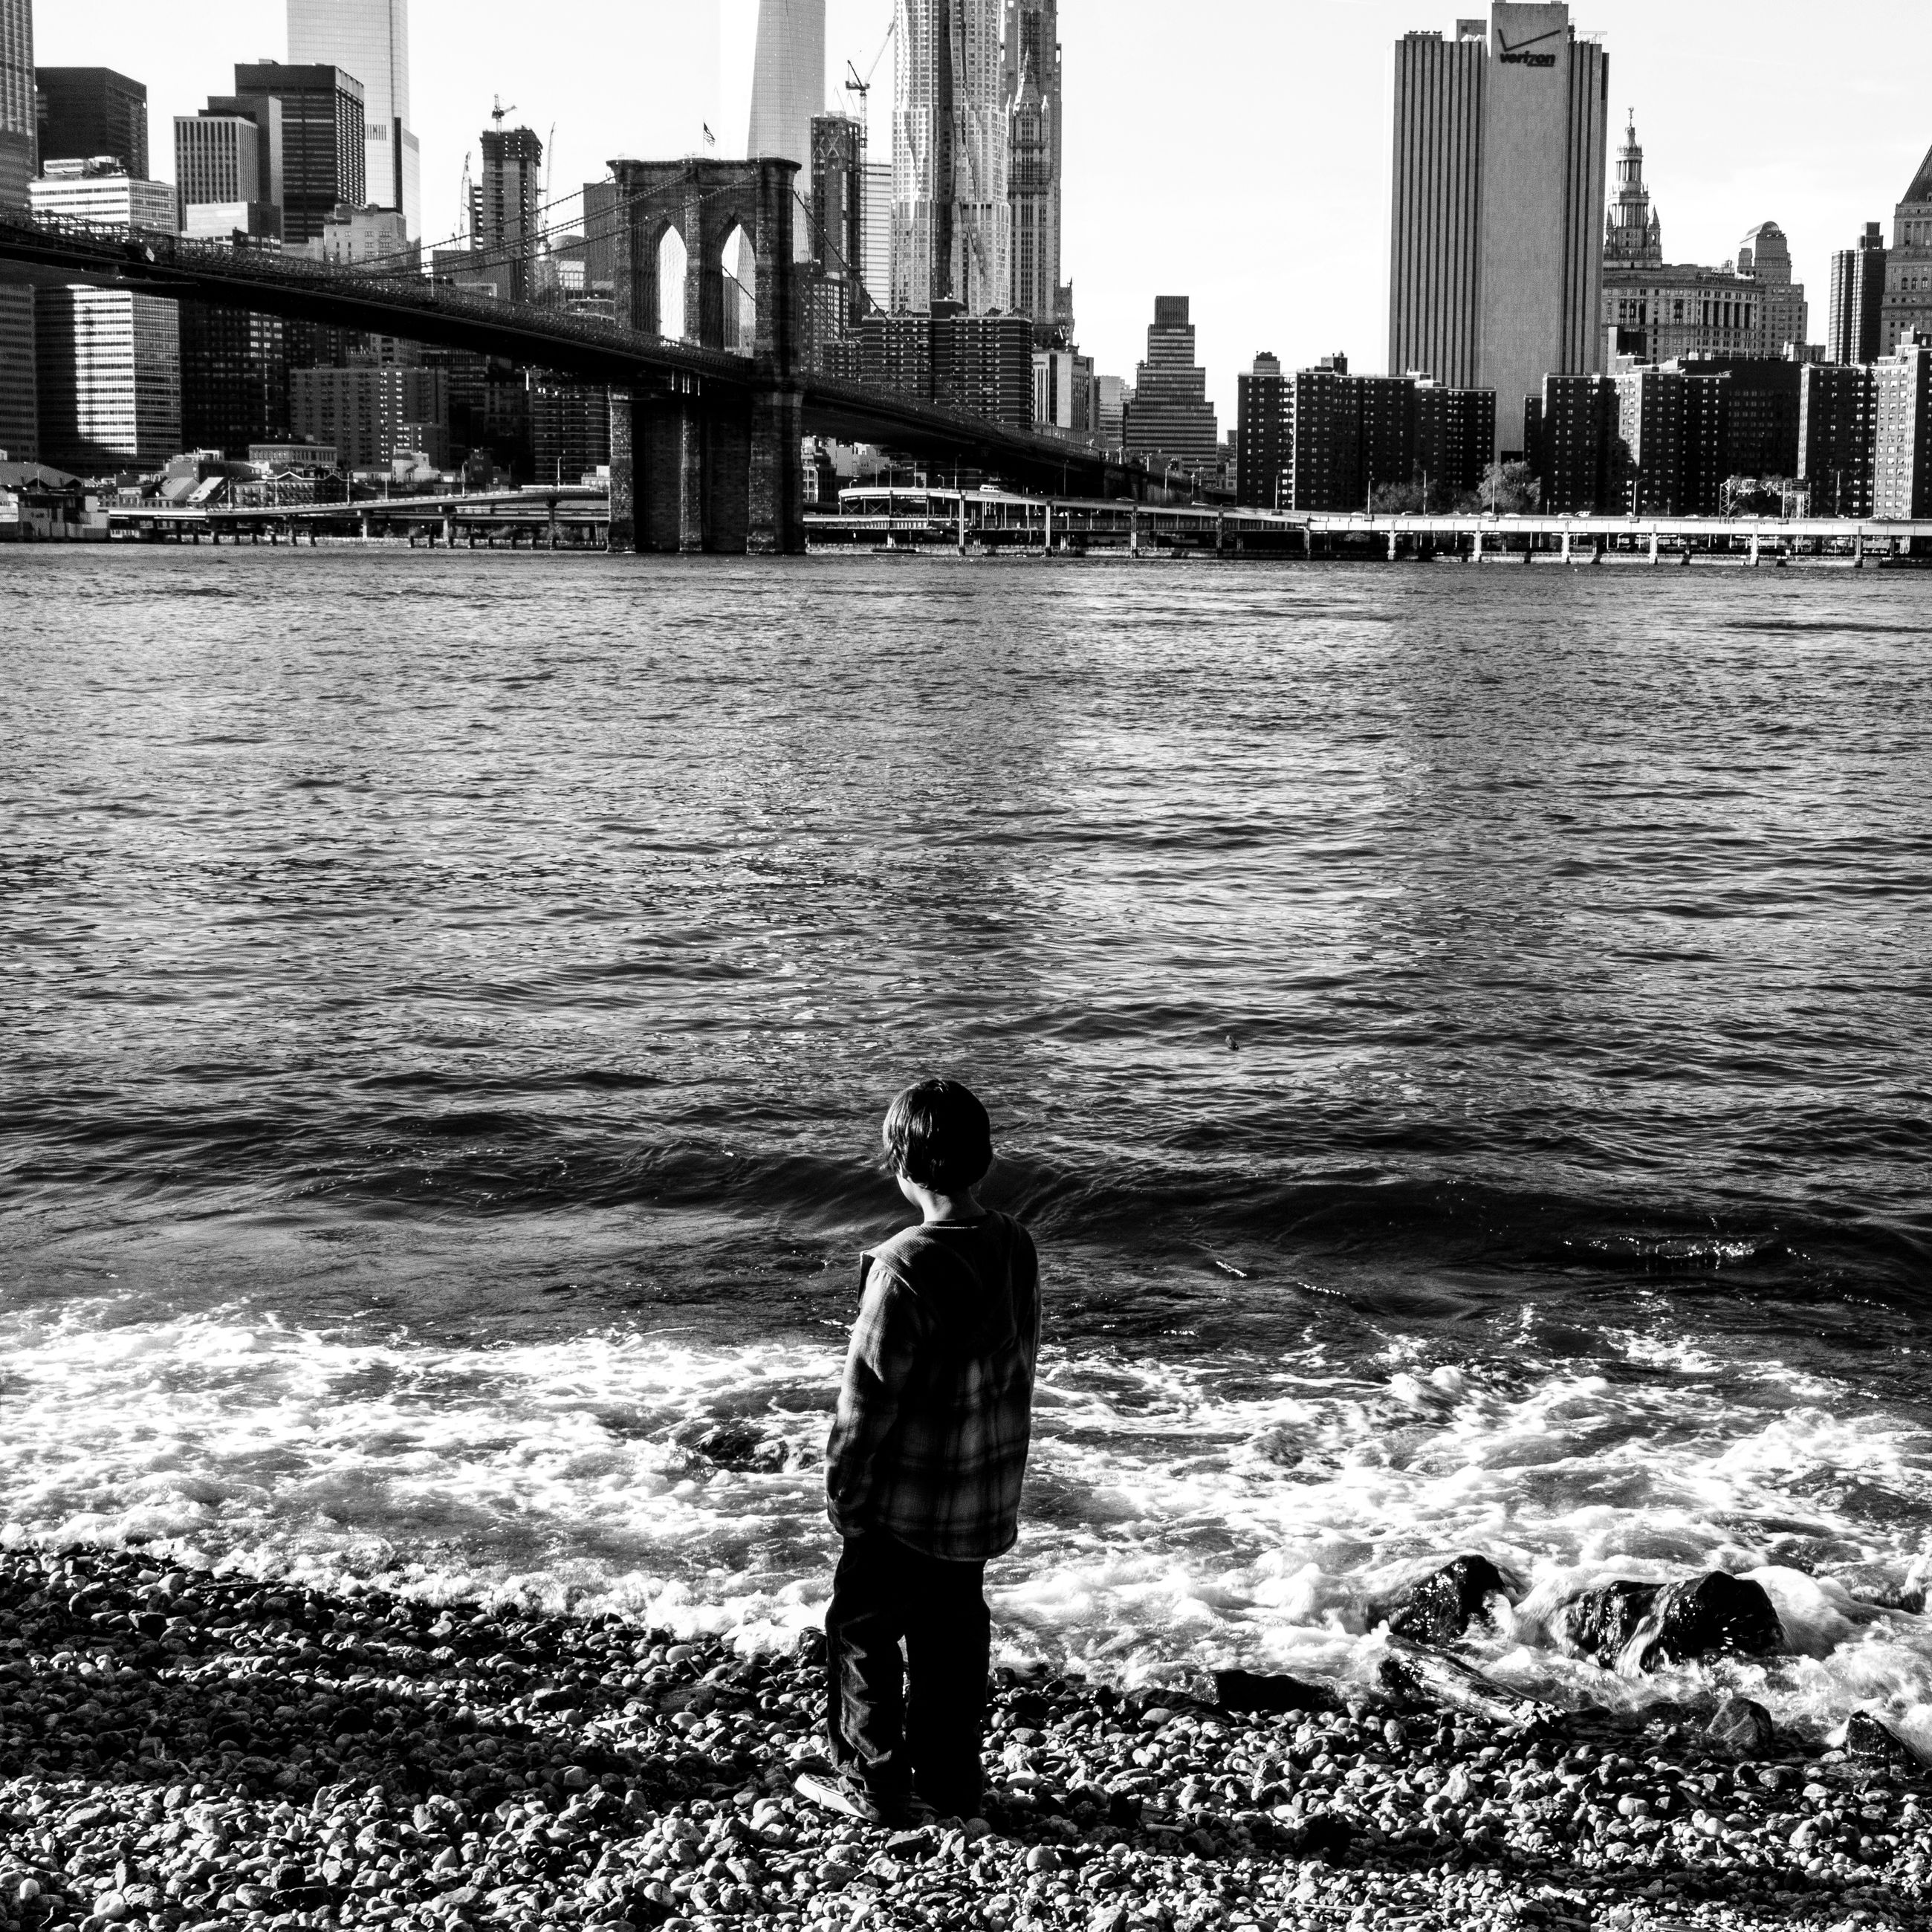 water, building exterior, architecture, built structure, city, lifestyles, leisure activity, rear view, men, standing, city life, river, full length, sea, cityscape, three quarter length, person, building